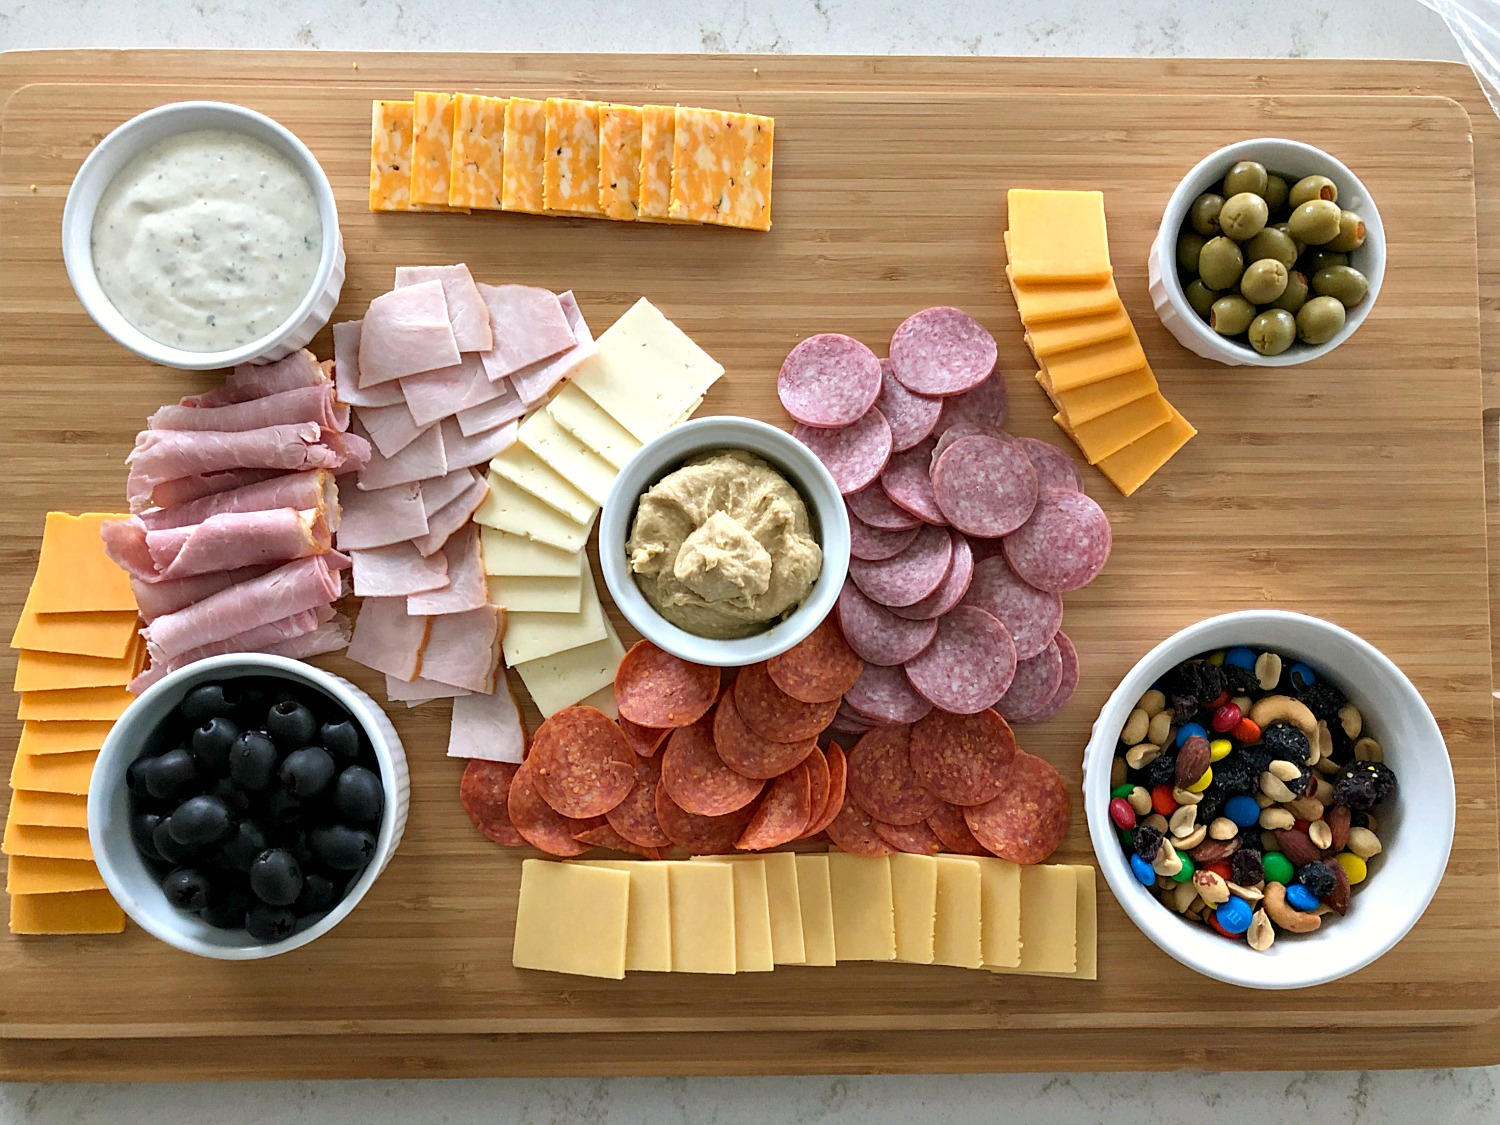 small pieces of ham and cheese with dips in white bowls spread out on a wooden cutting board